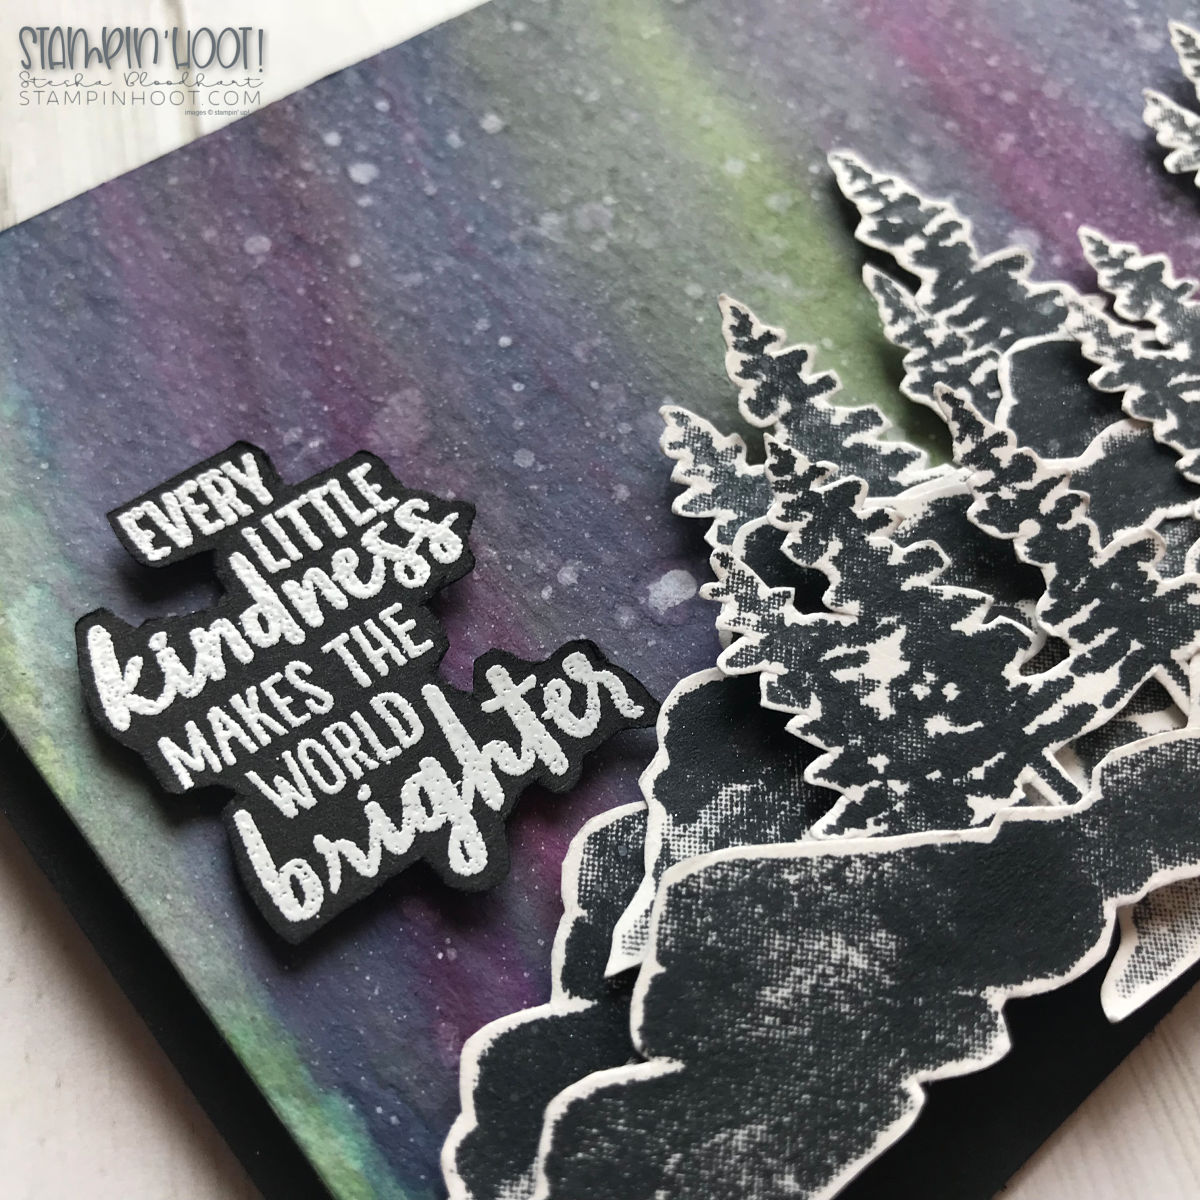 Waterfront Stamp Set by Stampin' Up! Galaxy Background Card created by Stesha Bloodhart, Stampin' Hoot! for the What Will You Stamp #wwys186 Challenge. #stampinhoot #steshabloodhart